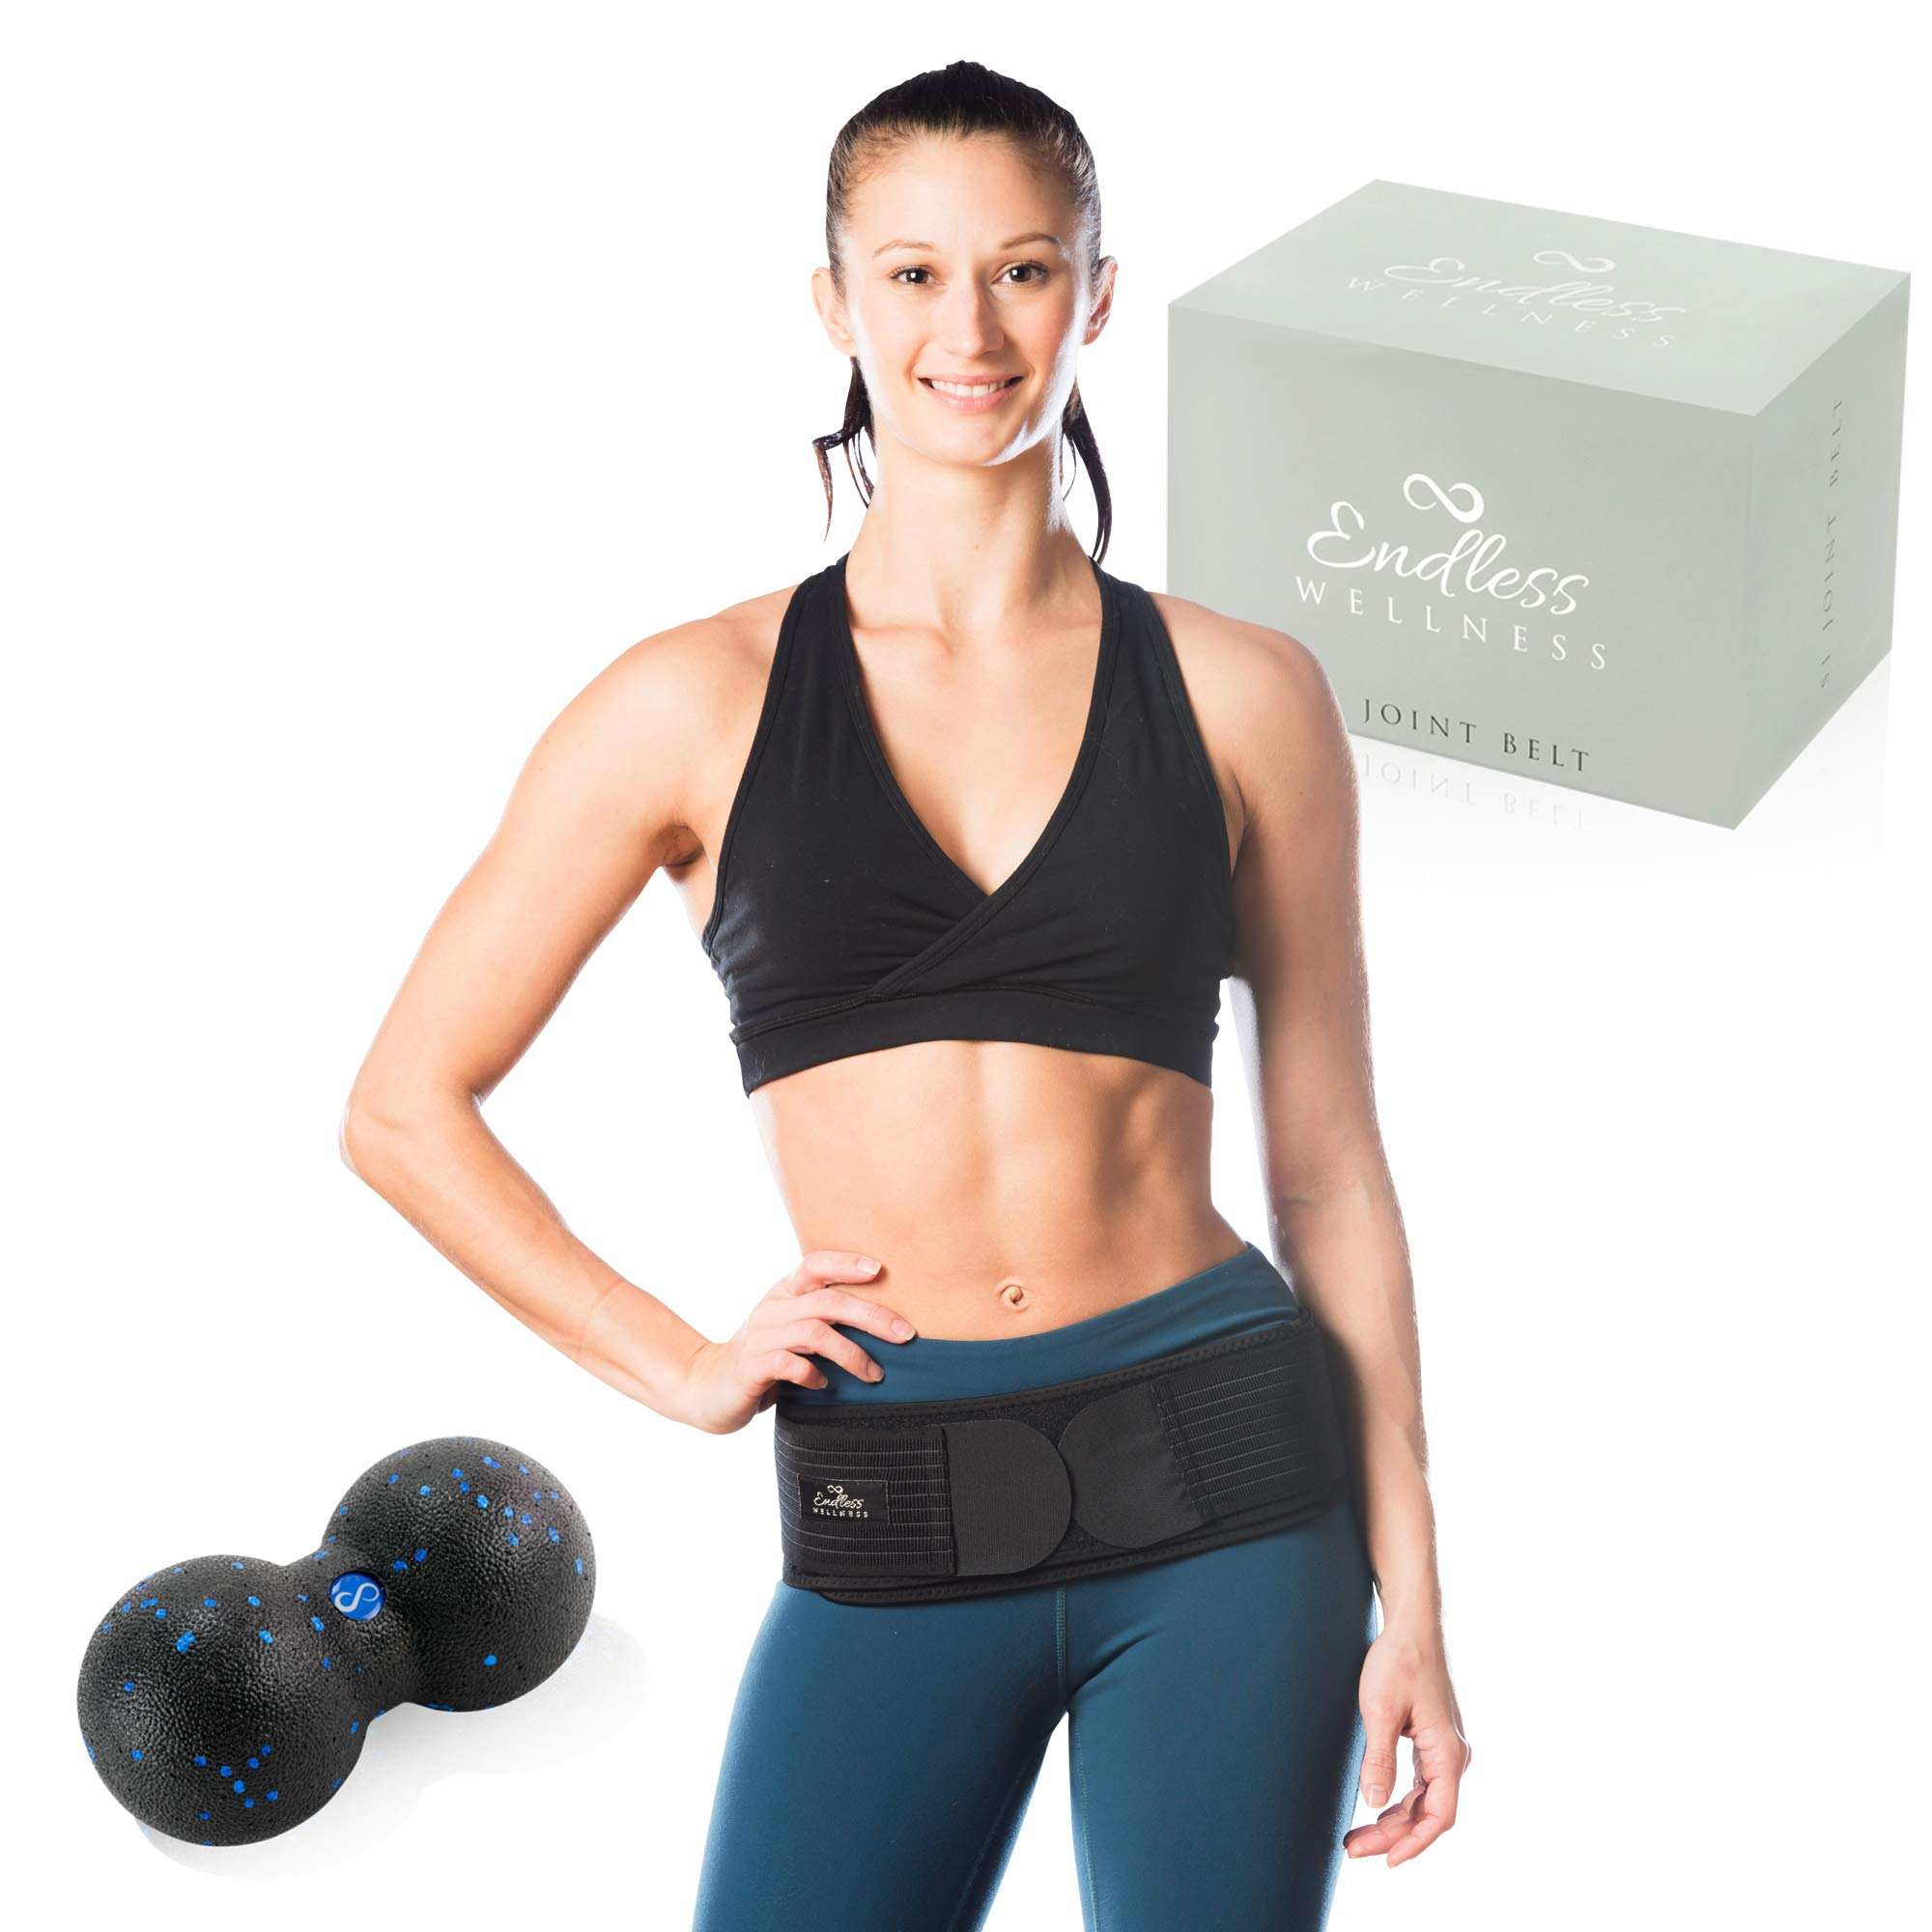 Si belt – Lower Back Support Belt for Women and Men – Stabilizes and Relieves Pelvic and SI Joint Pain *BONUS BUNDLE DUAL MASSAGE BALL + E-BOOK* Discreet Fit Sacroiliac Belt and Lower Back Hip Brace !